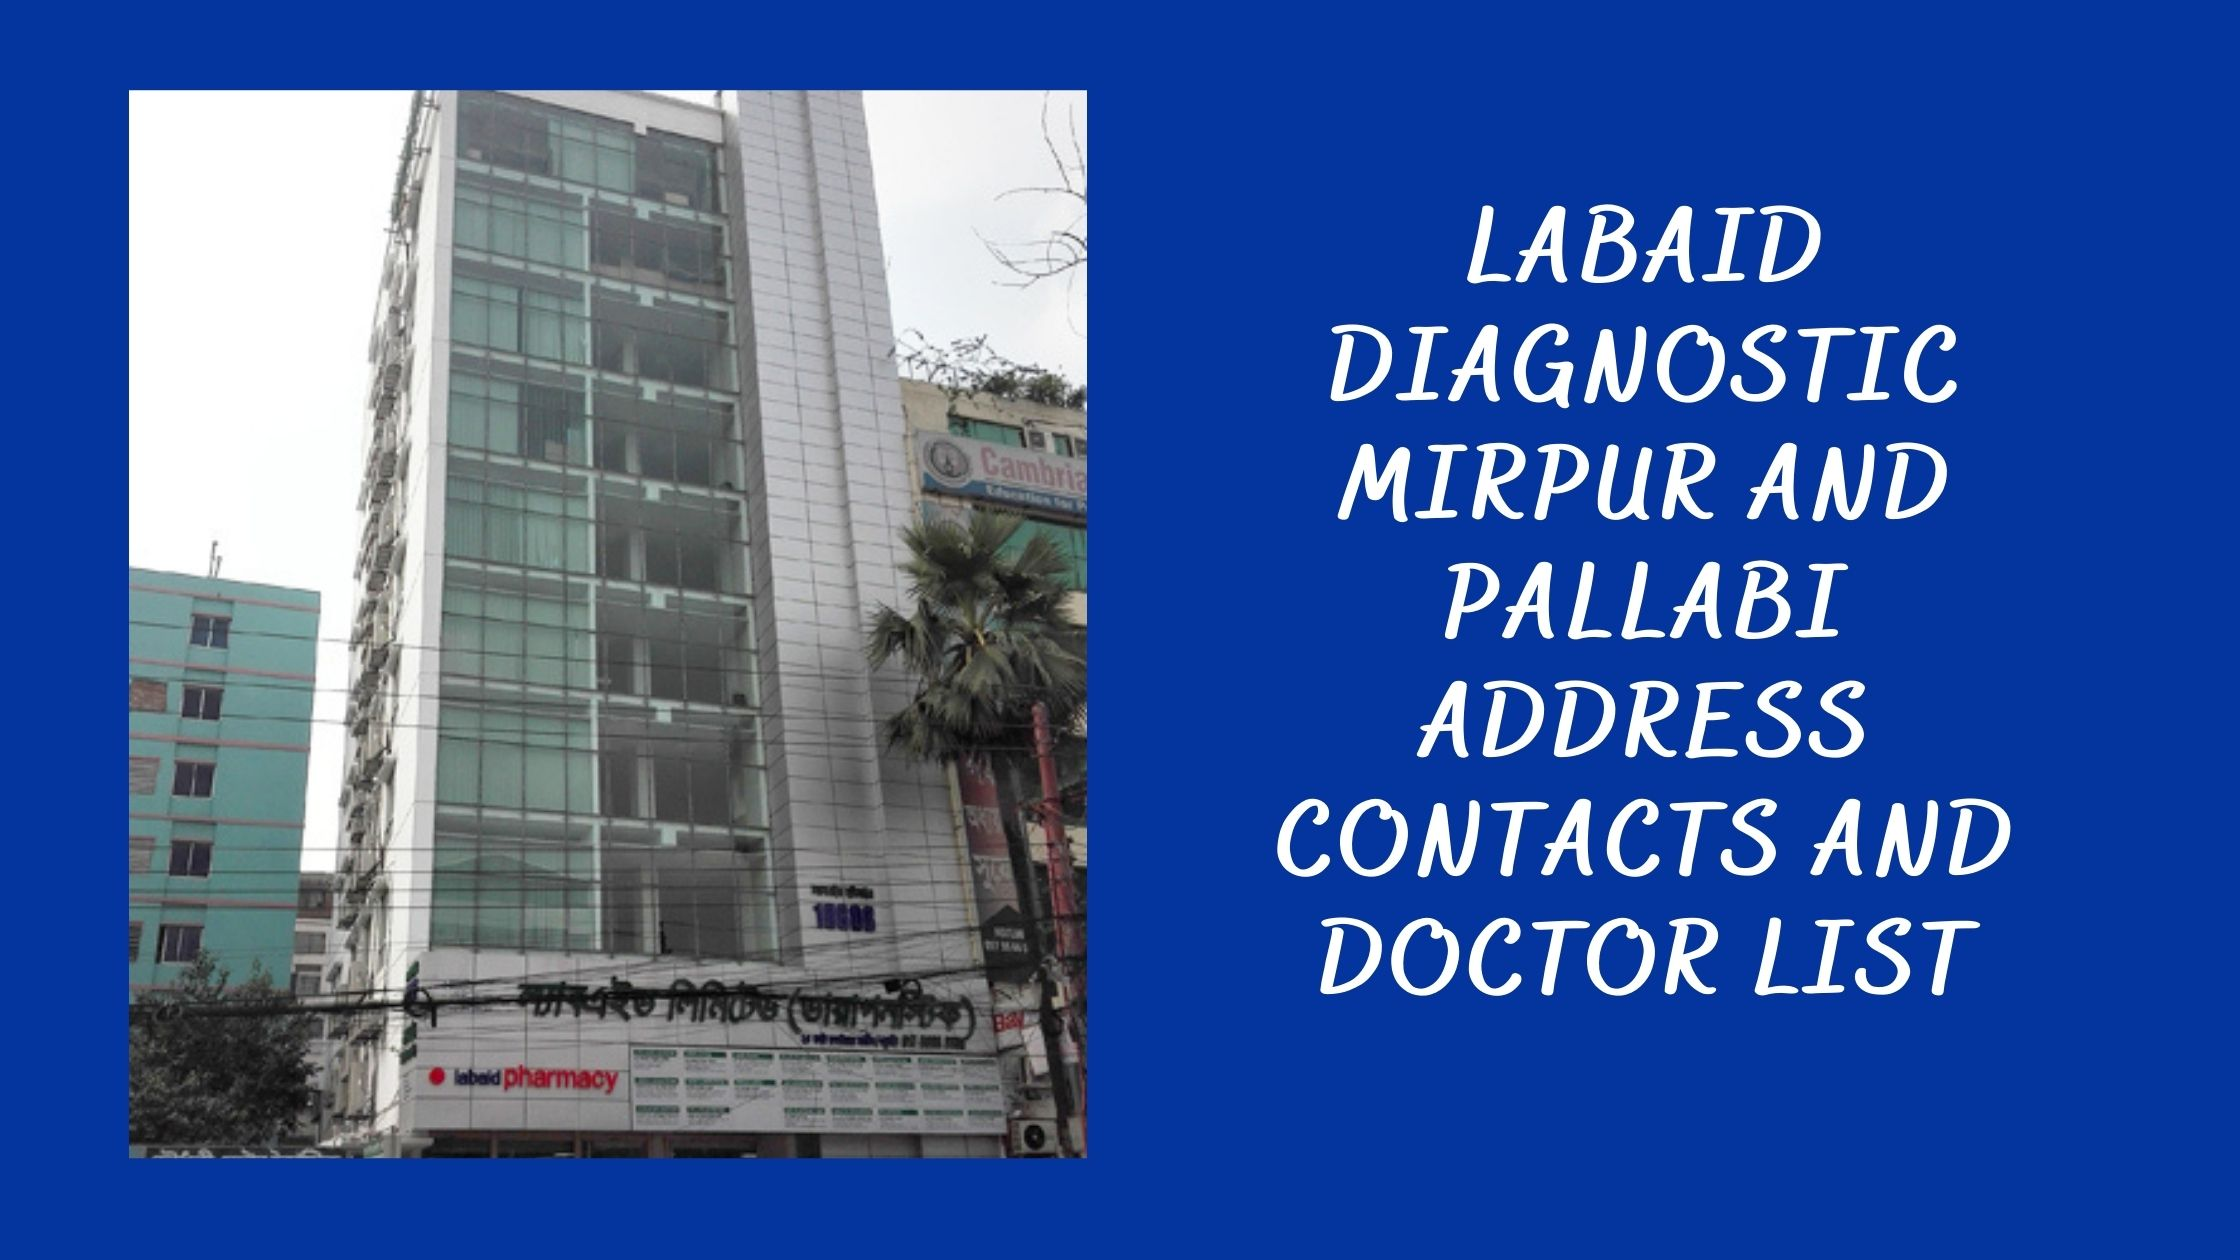 Labaid Hospital Mirpur and Pallabi Address and Doctor List